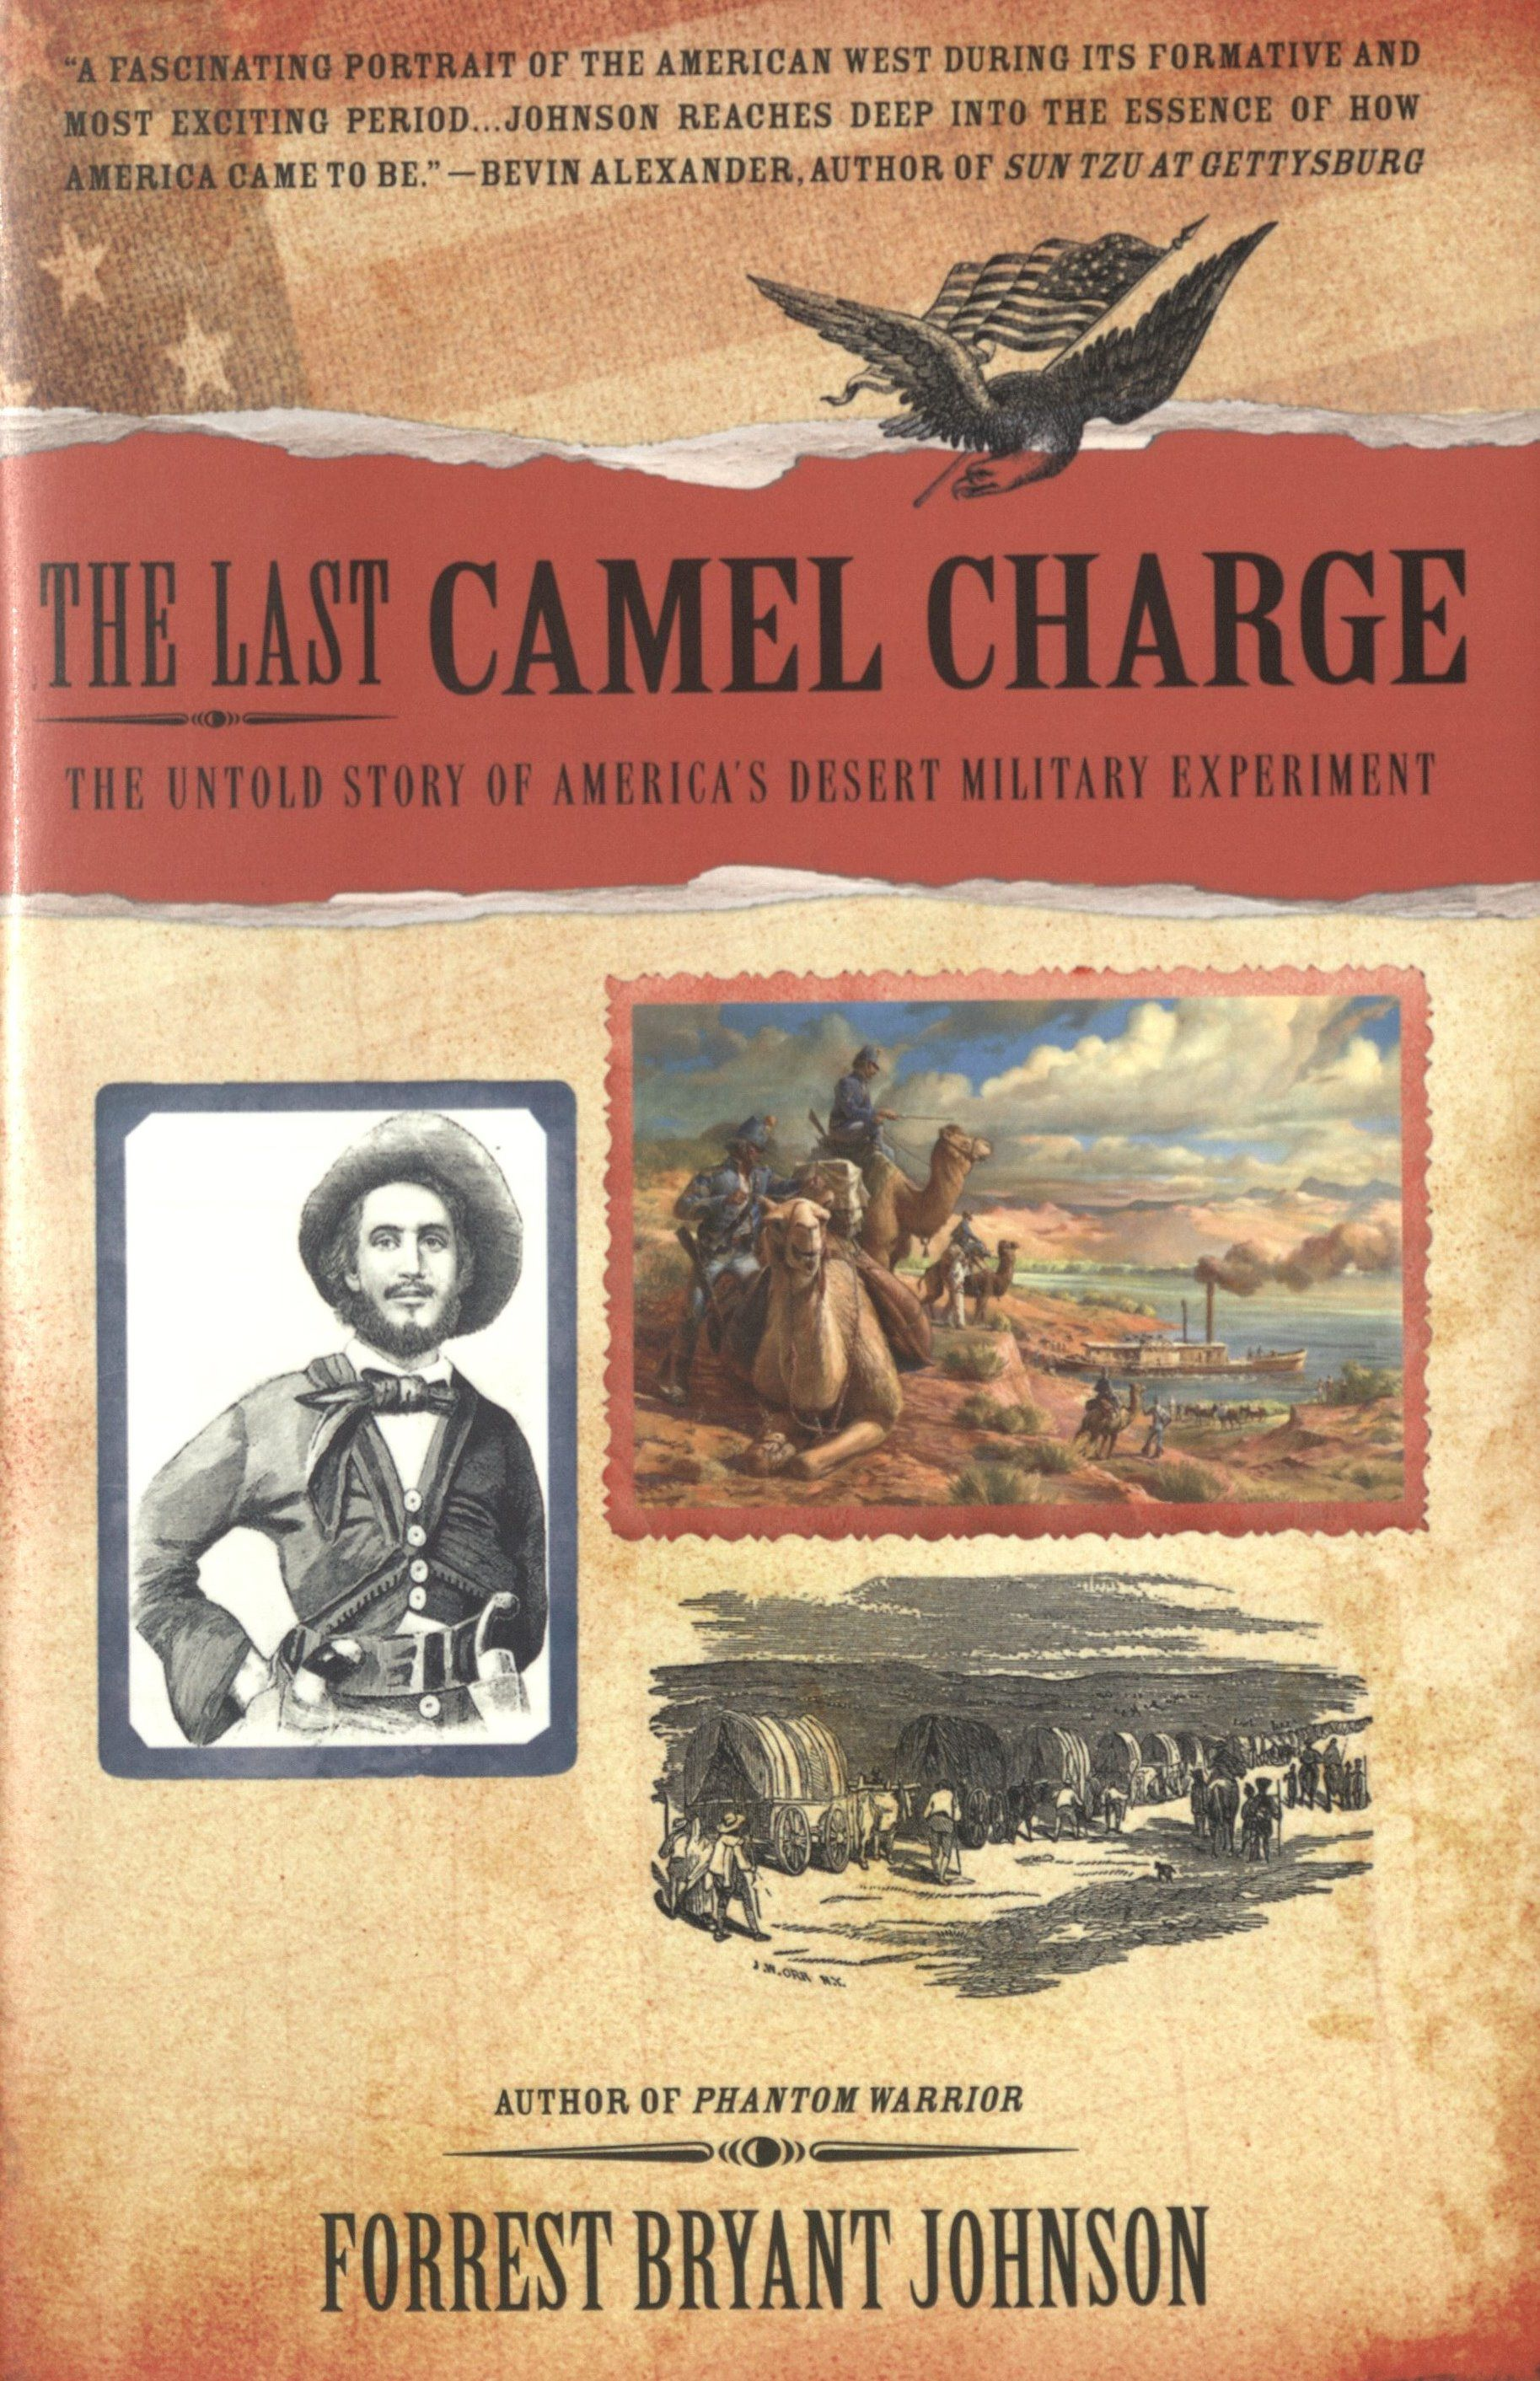 Johnson, Forrest Bryant. The Last Camel Charge: The Untold Story of America's Desert Military Experiment. New York: Berkley Caliber, 2012. Print.